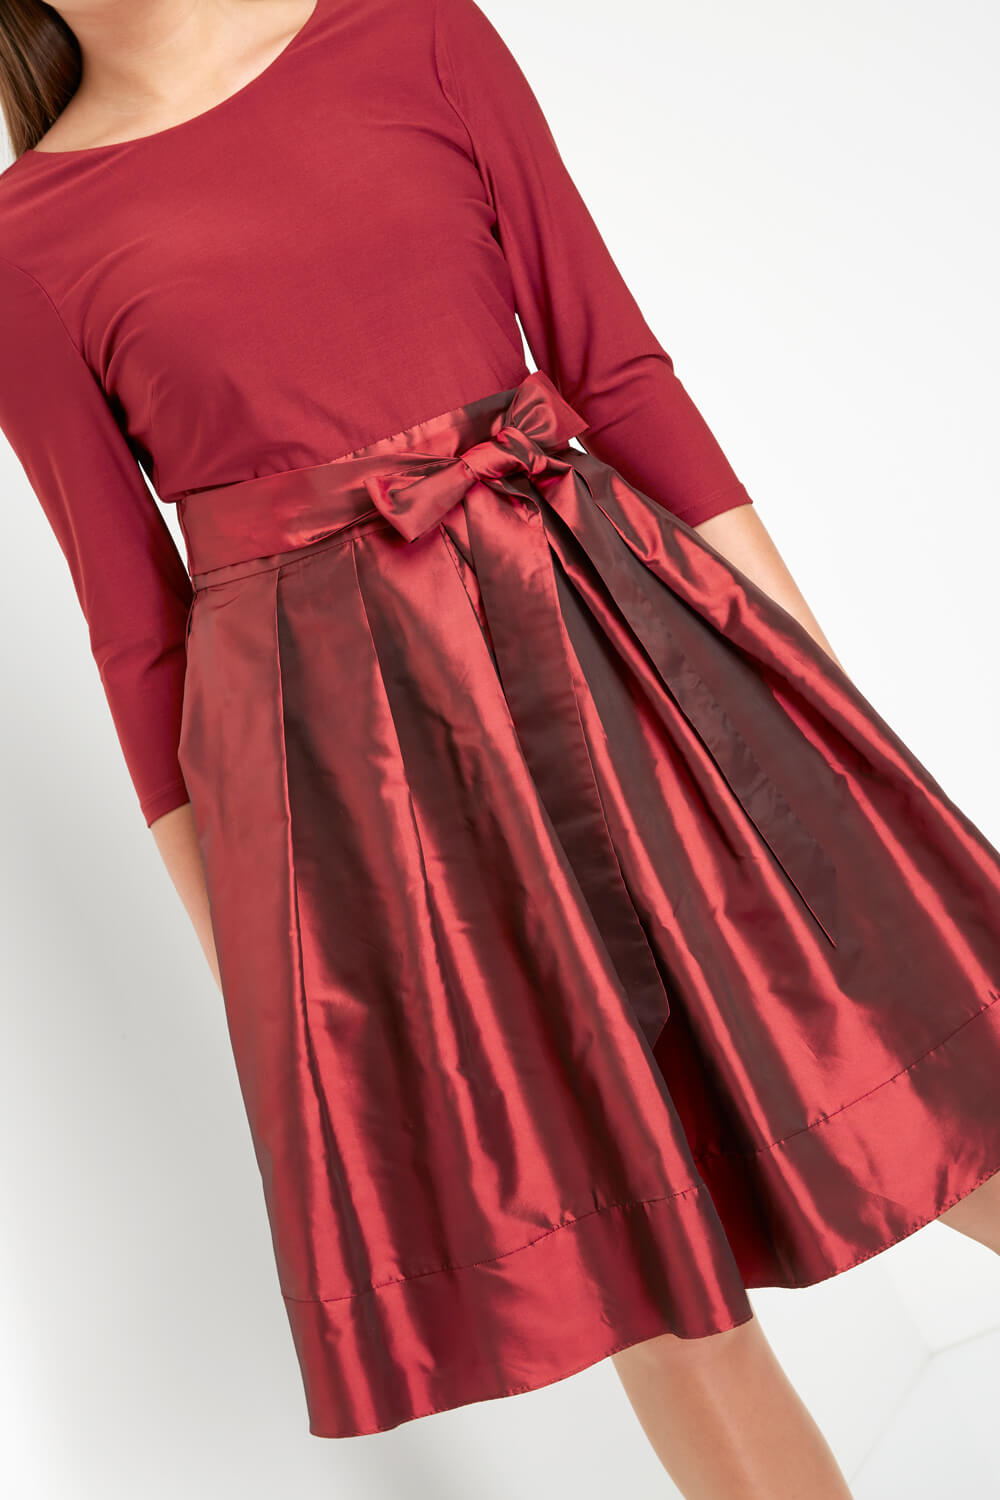 Roman-Originals-Women-039-s-Red-Fit-and-Flare-Dress-Sizes-10-20 thumbnail 11